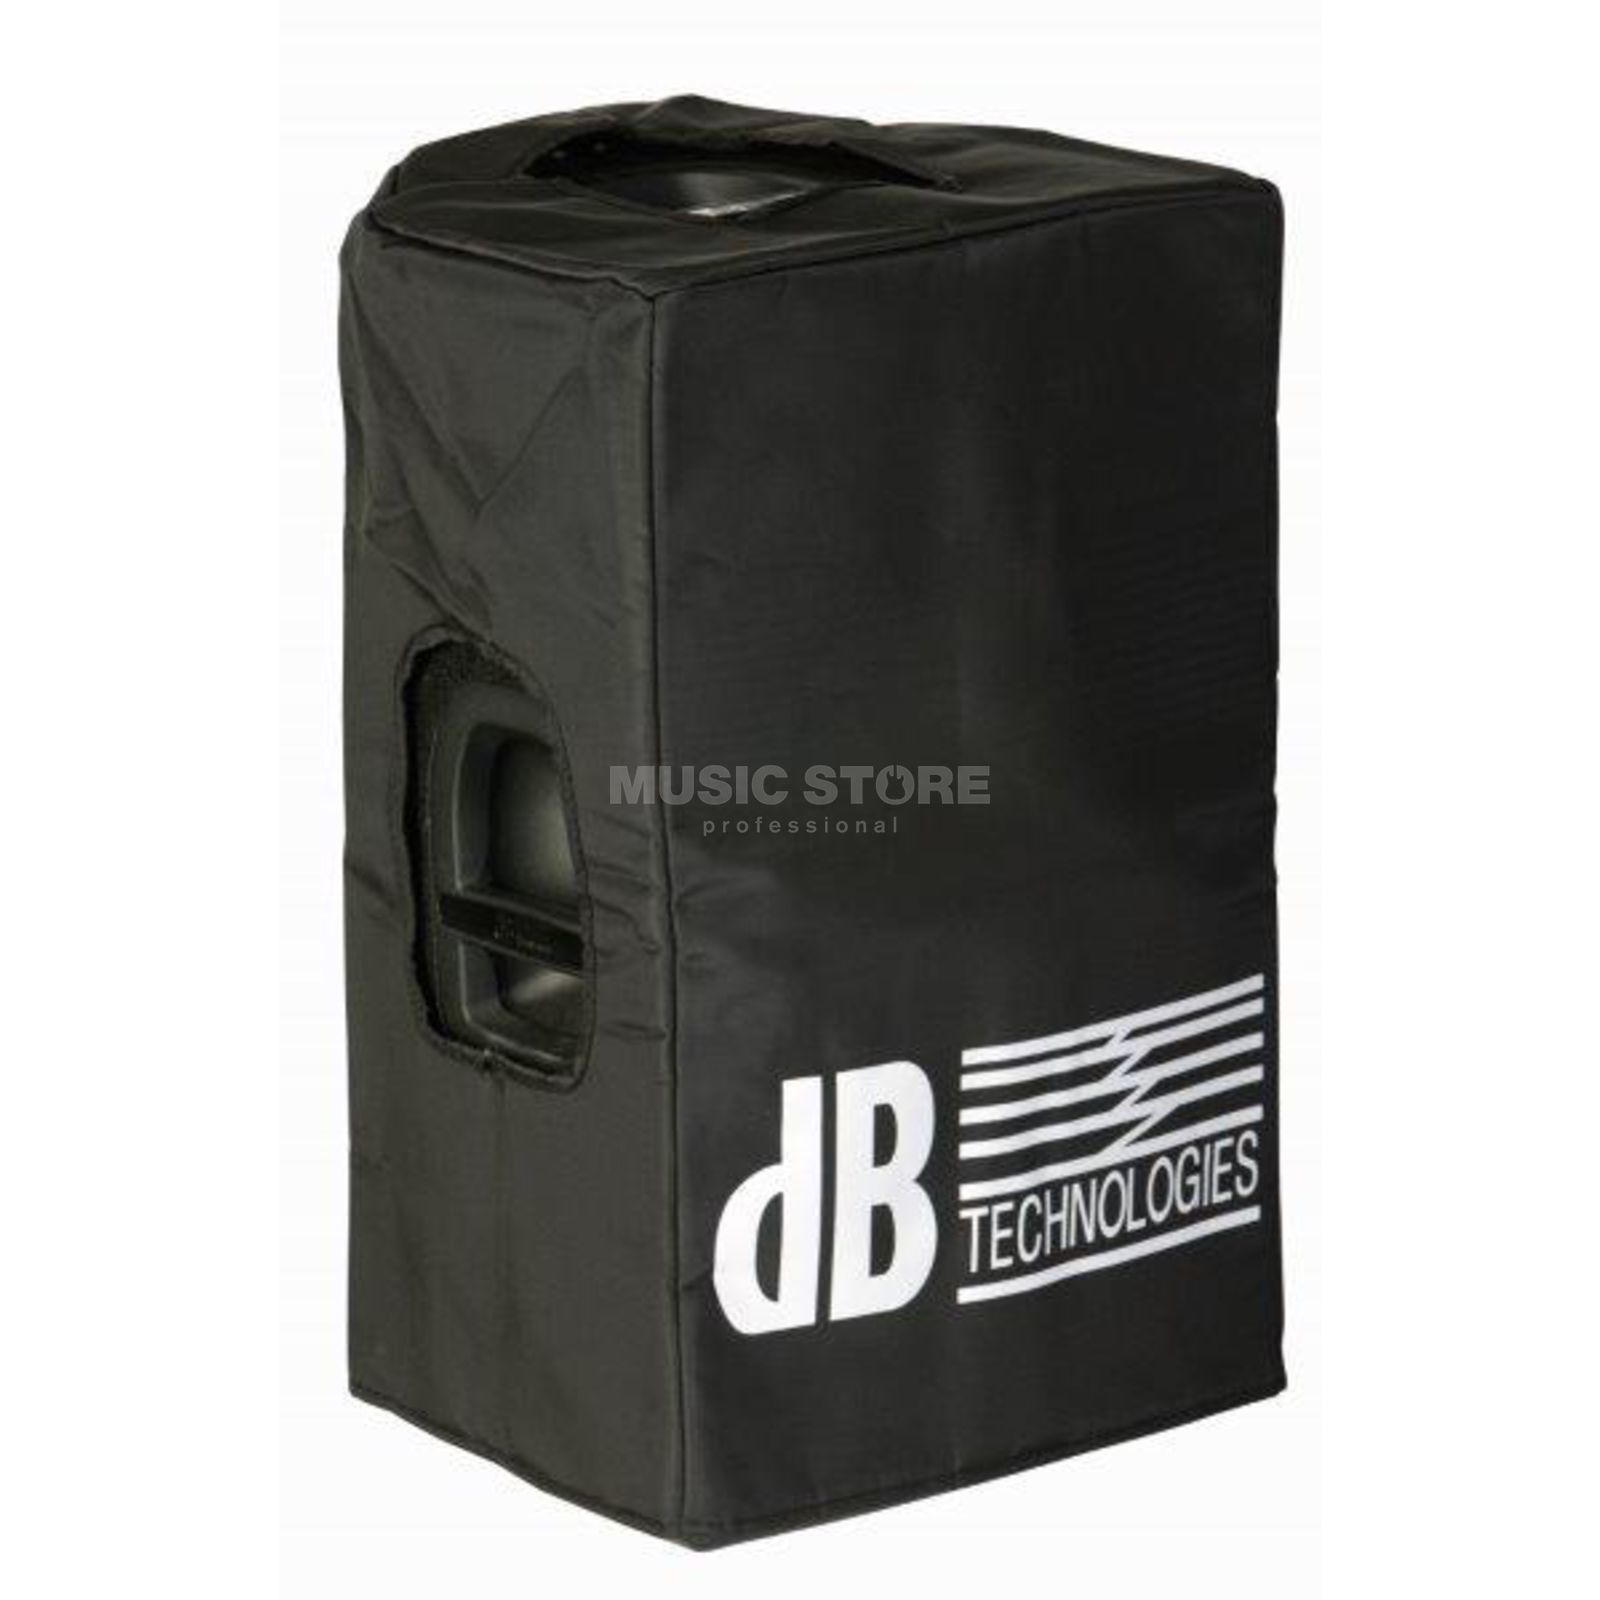 dB Technologies TC 12 Protective Cover for DVx - D12  Produktbillede